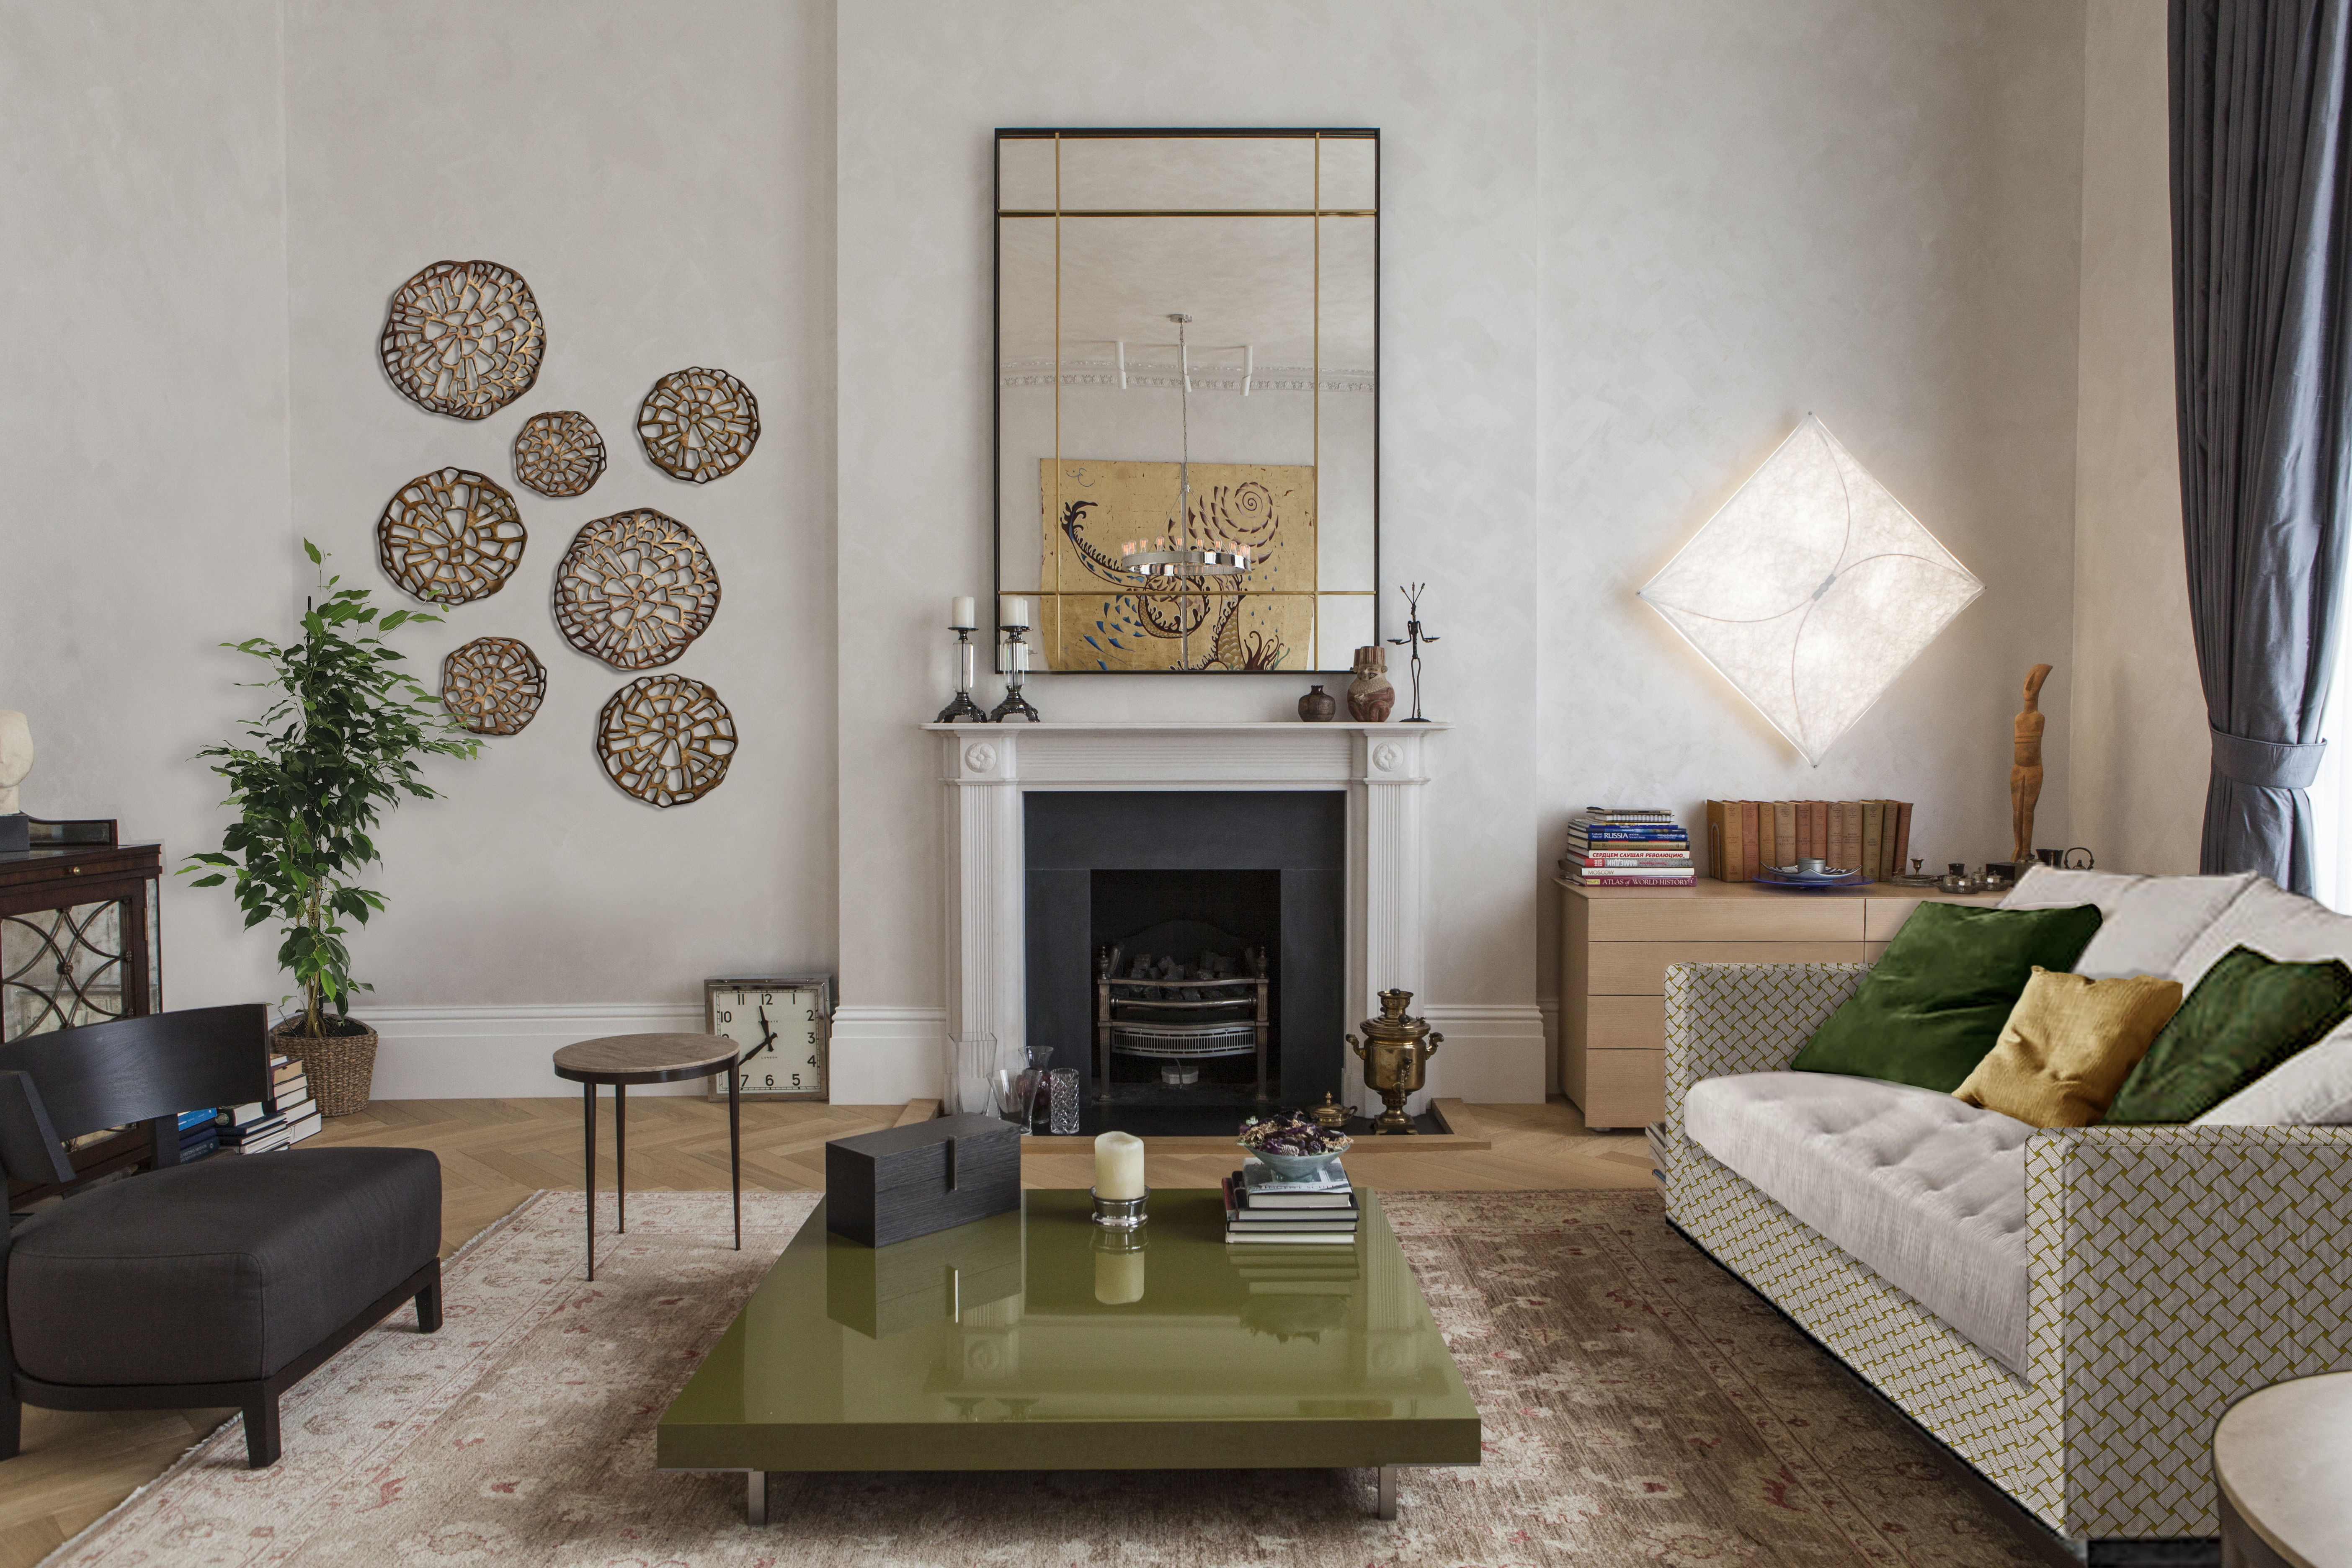 dorset square living room